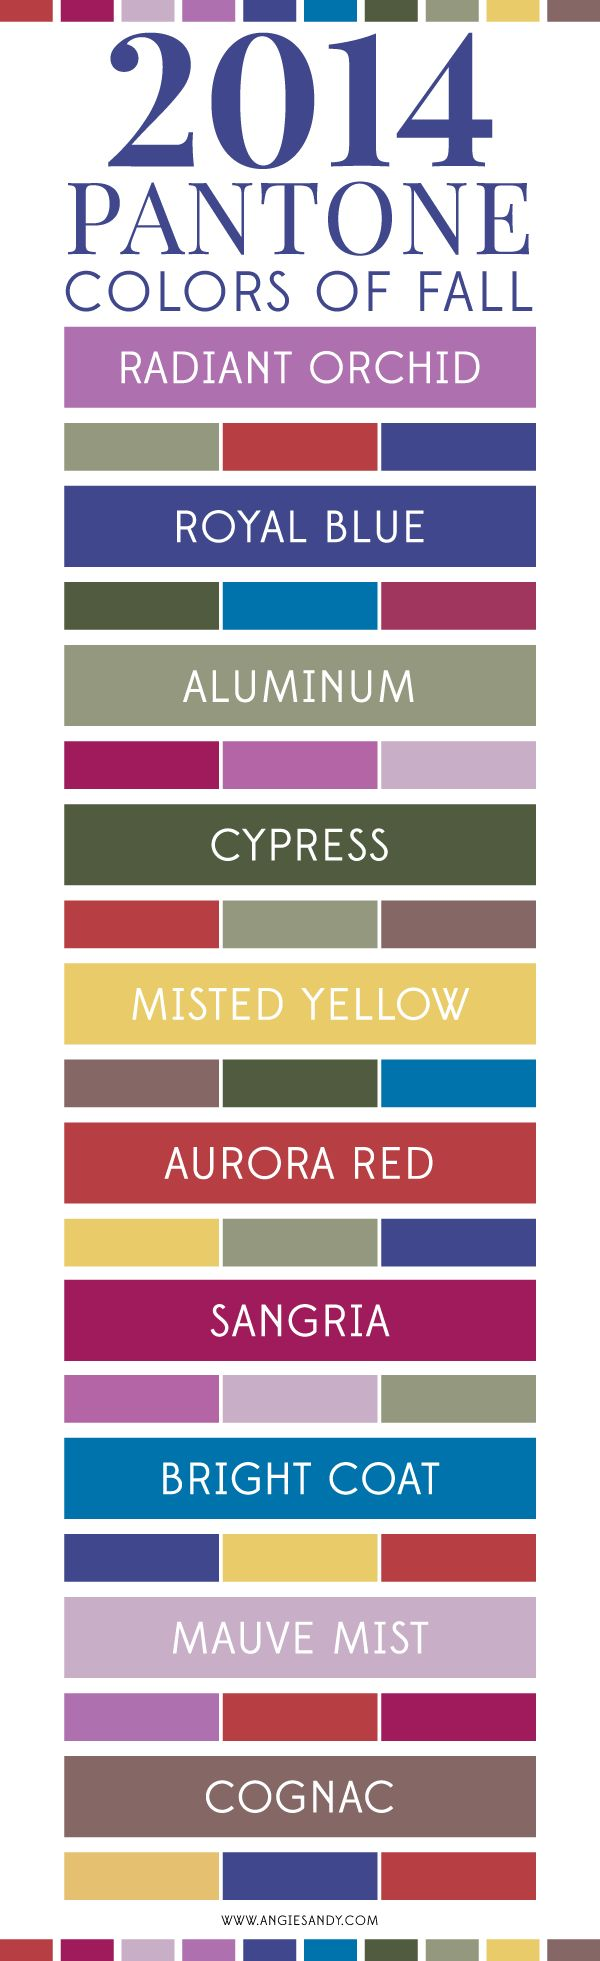 Pantone Colors of Fall 2014 |